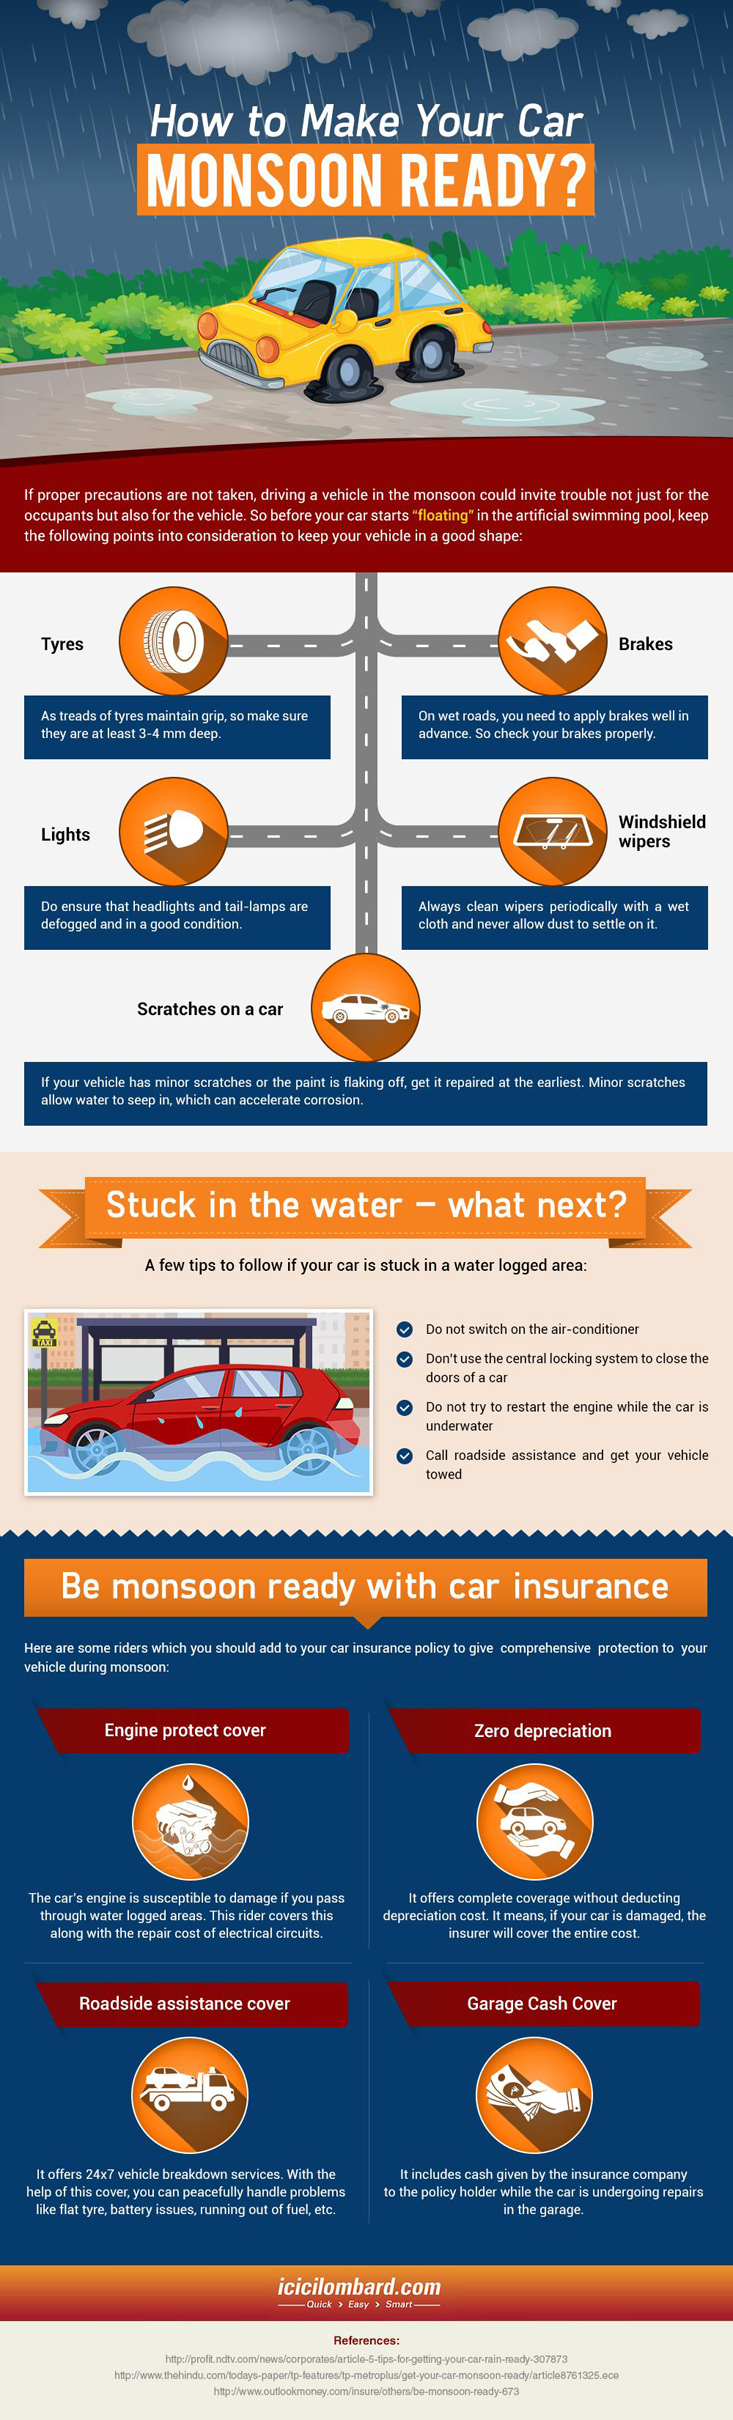 how-to-make-your-car-monsoon-ready